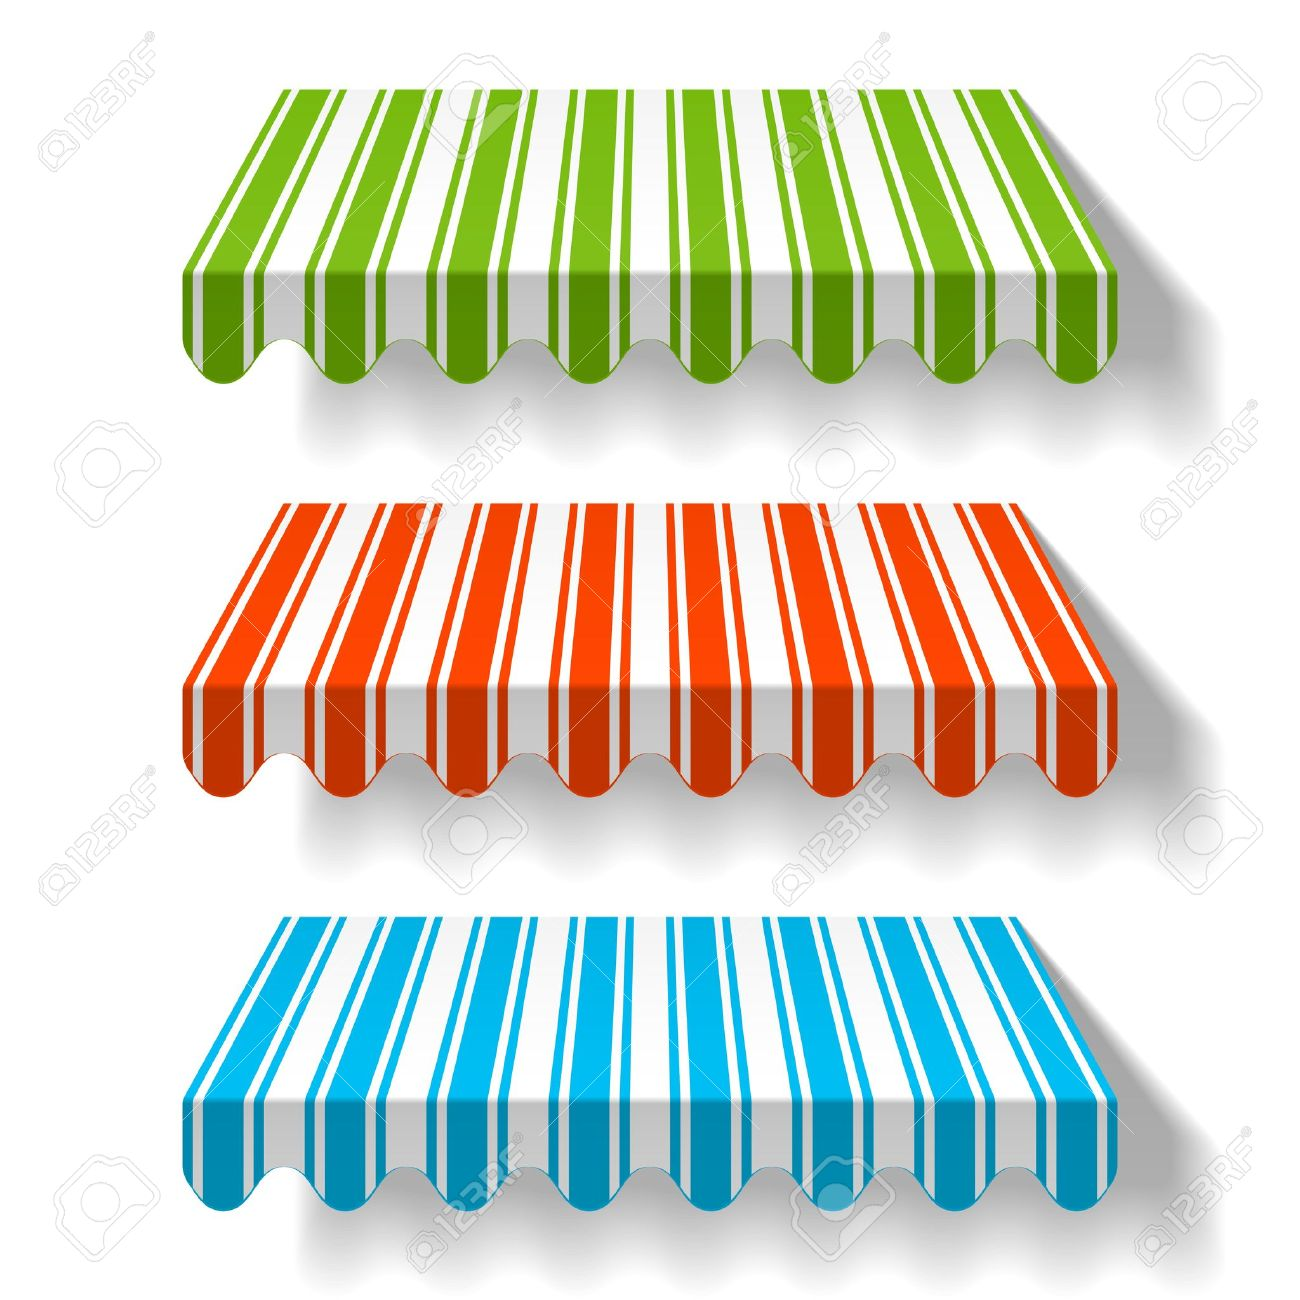 Colorful Awnings Royalty Free Cliparts, Vectors, And Stock.